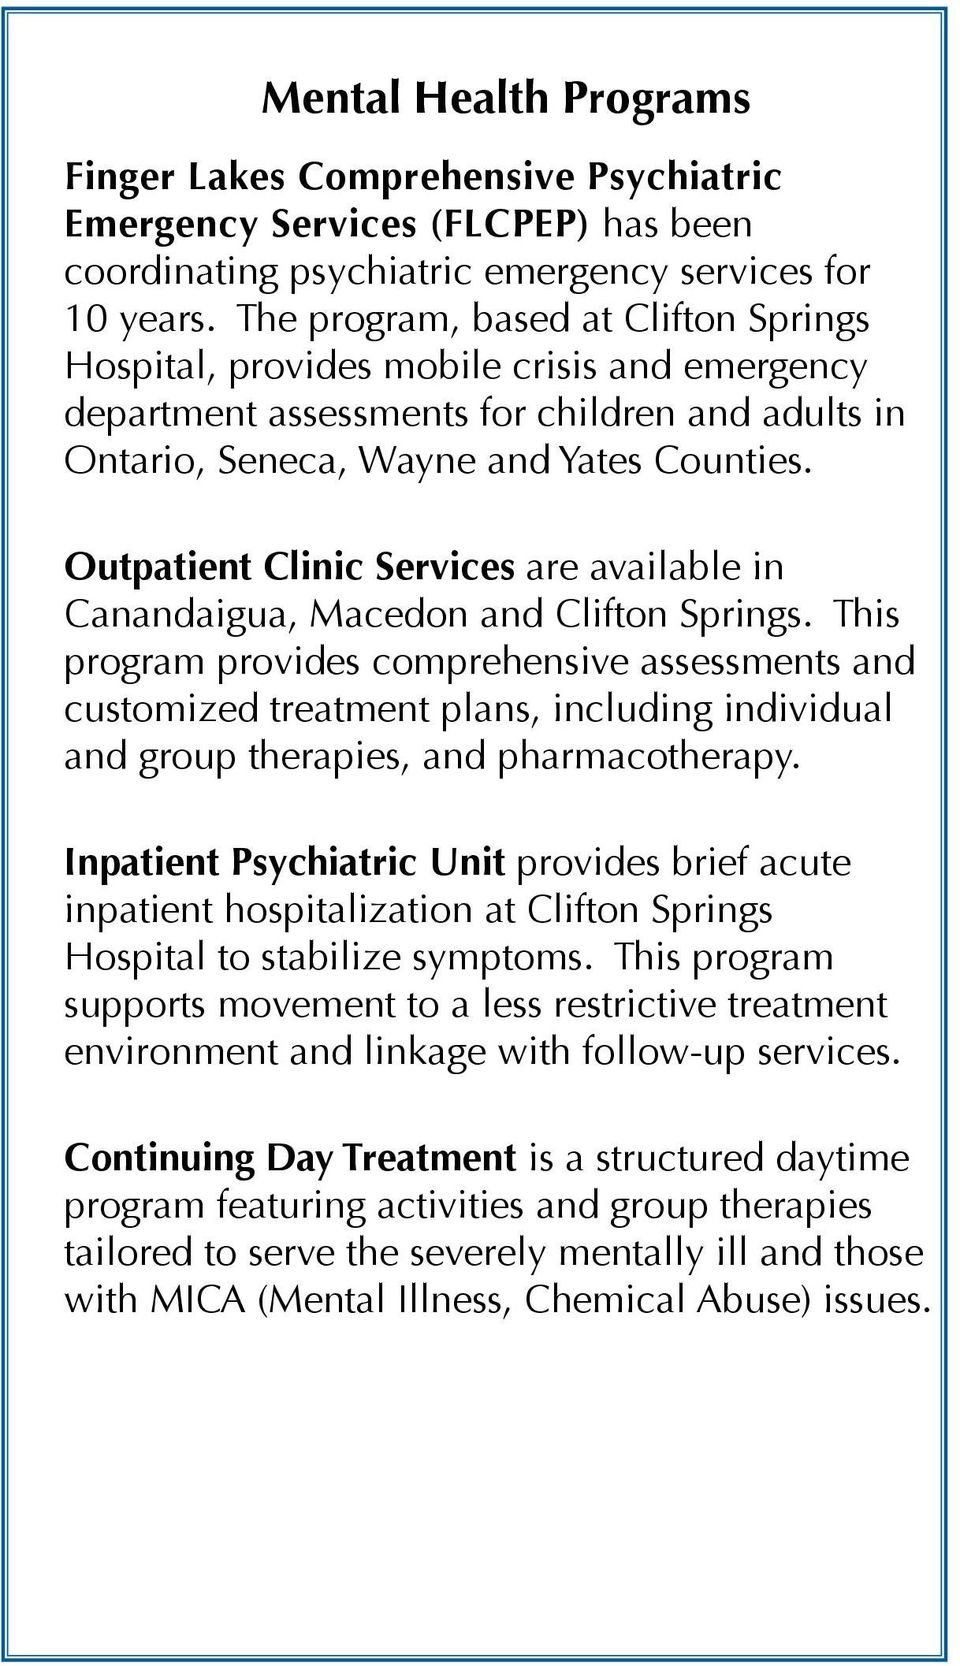 Outpatient Clinic Services are available in Canandaigua, Macedon and Clifton Springs.